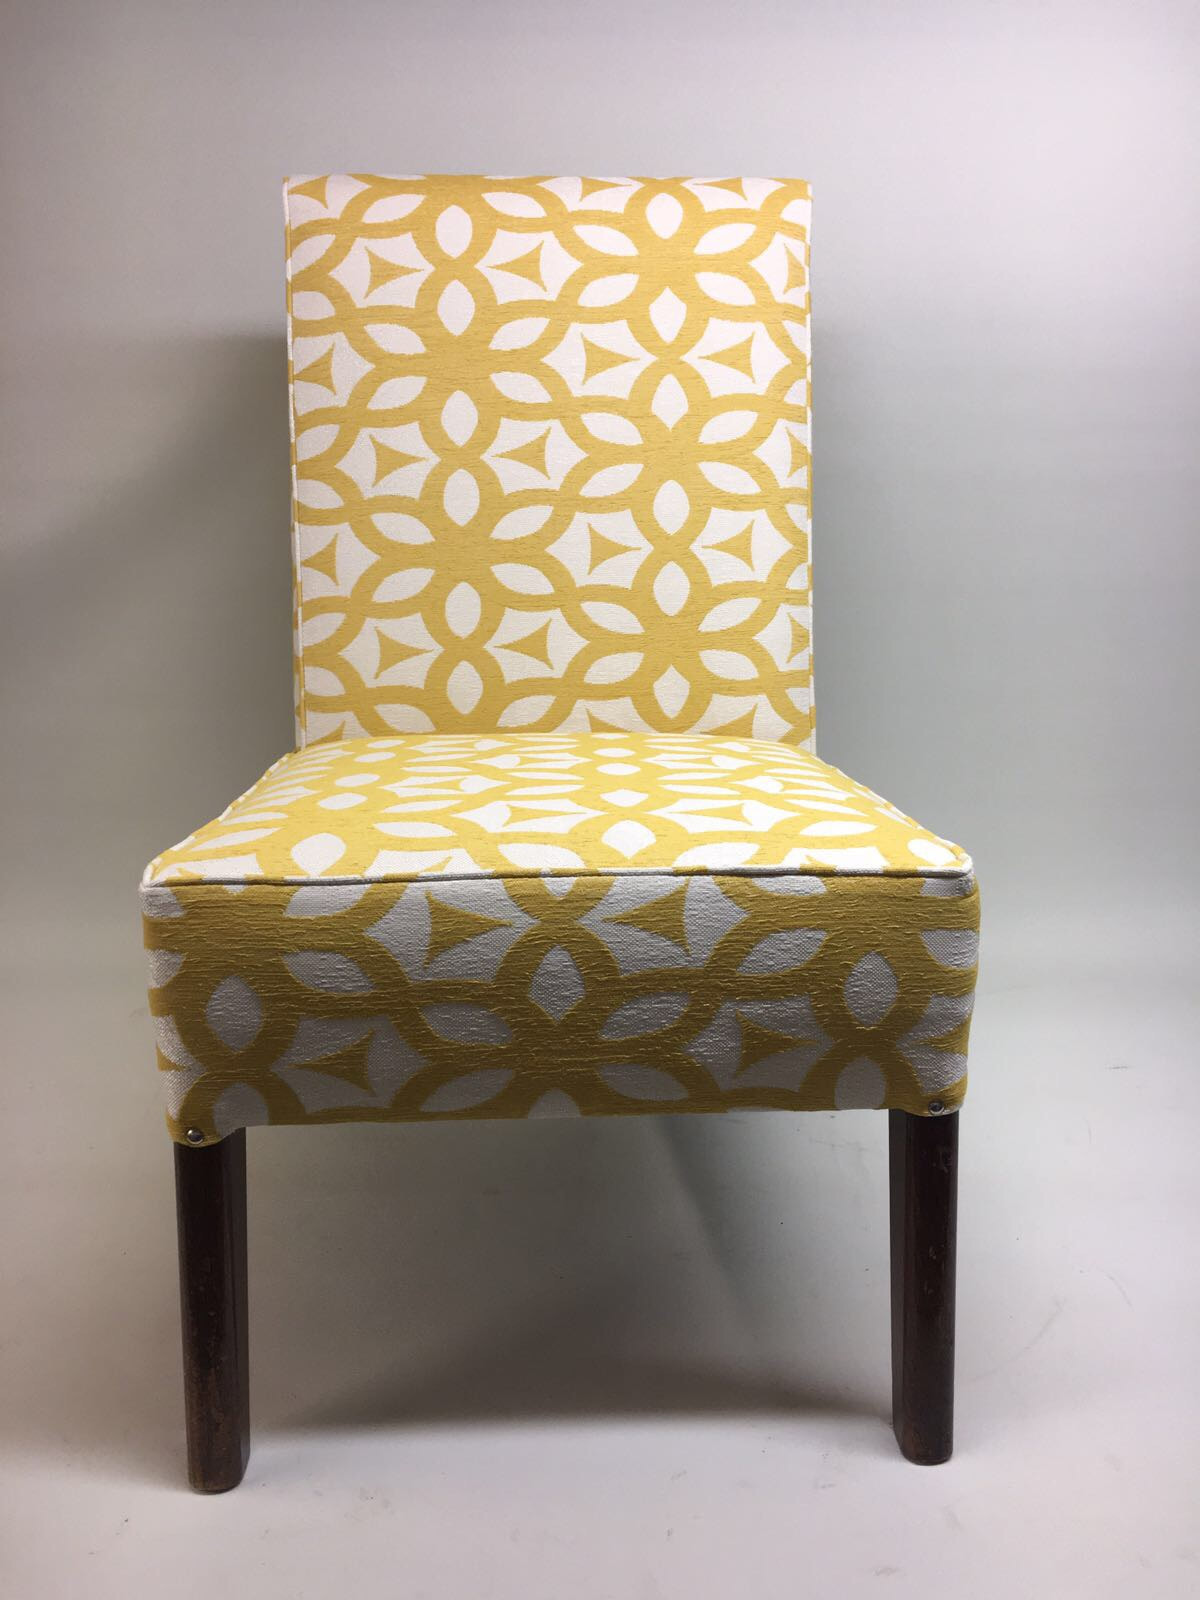 Bedroom Chair Recovered In Marks And Spencer Mustard Geometric Fabric